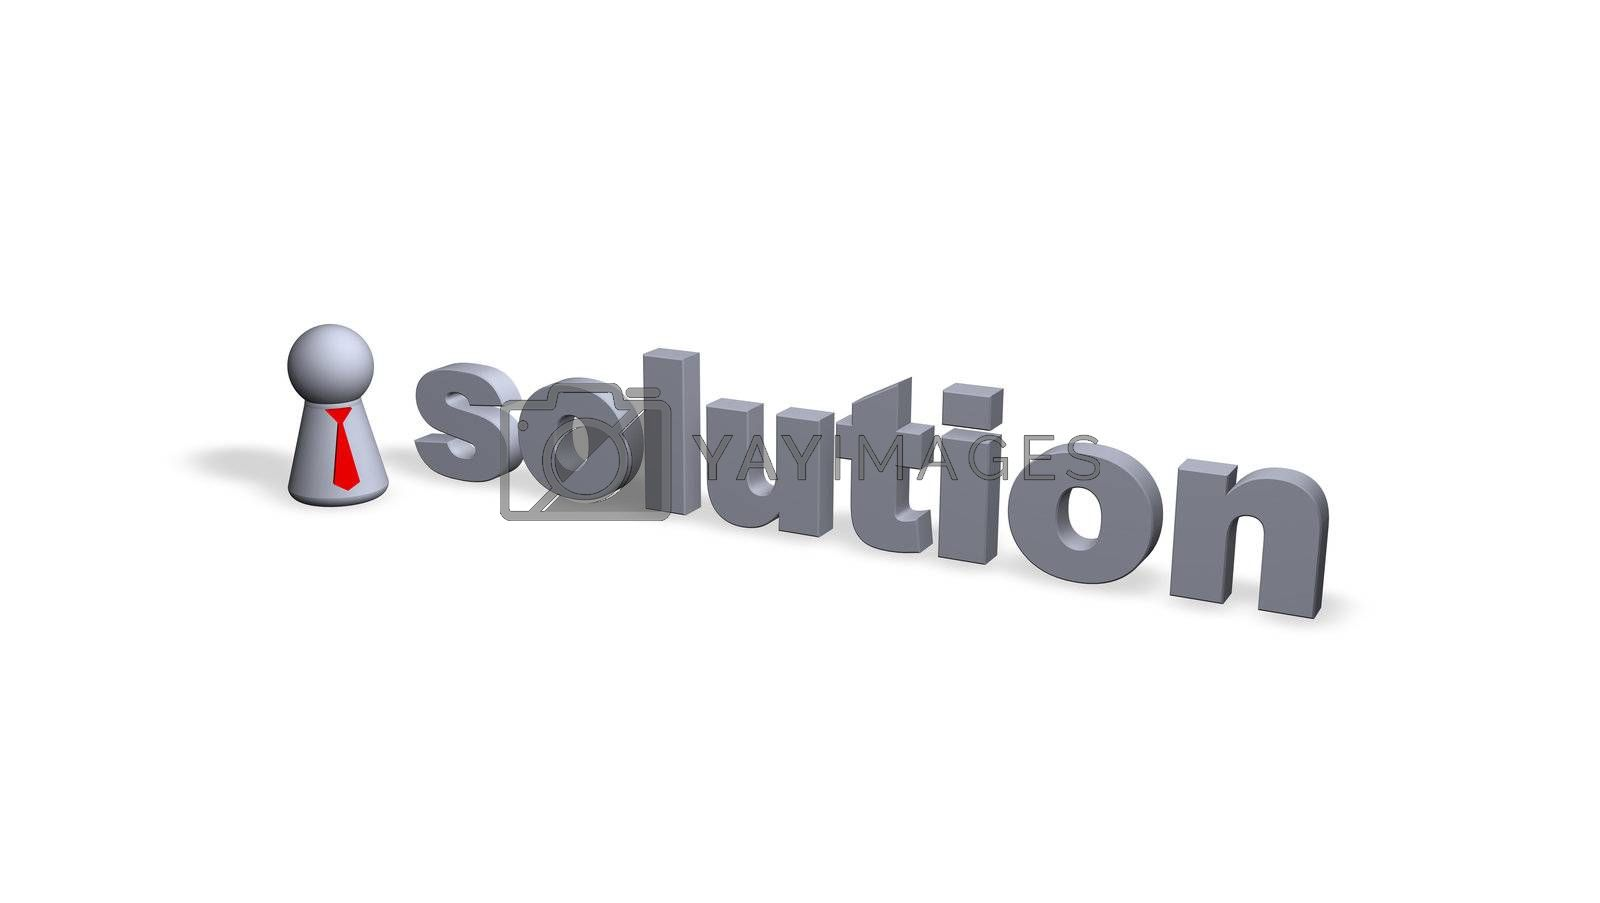 solution text in 3d and play figure with red tie